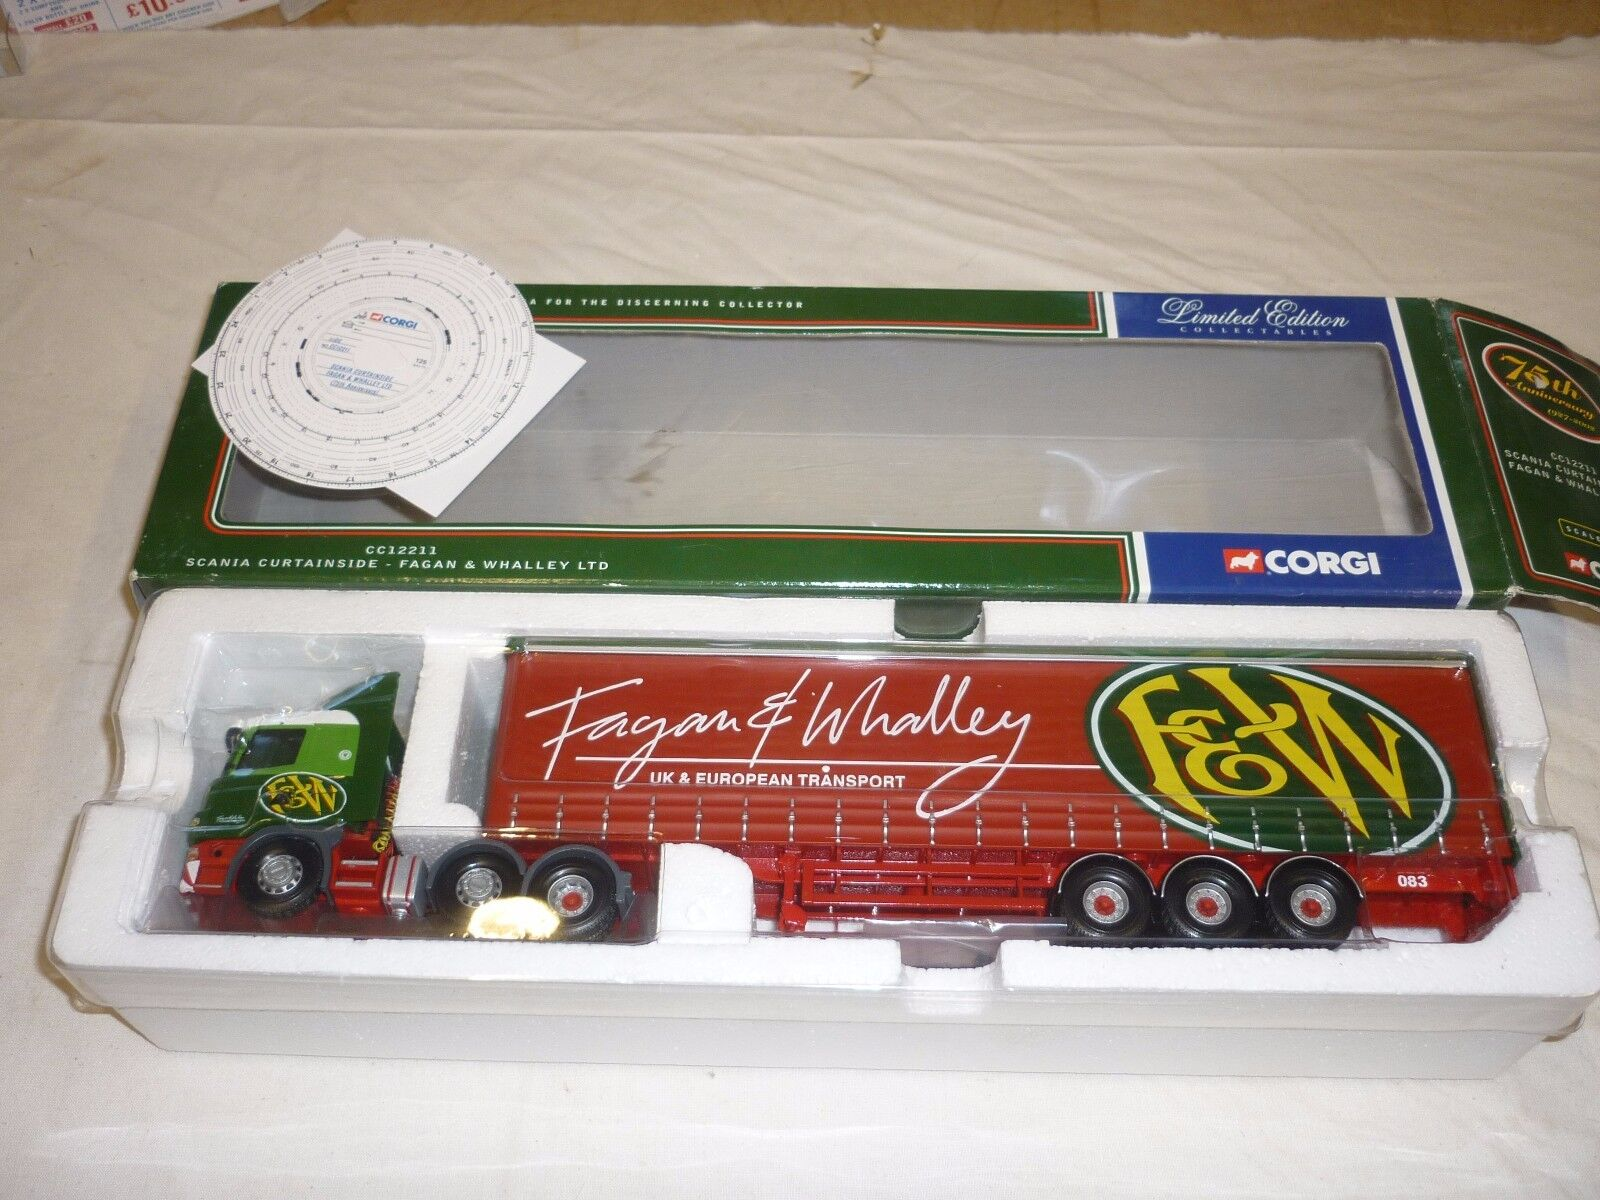 Un Corgi CC 12211, Scania Curtainside Remolque, Fagan & Whalley Ltd, En Caja